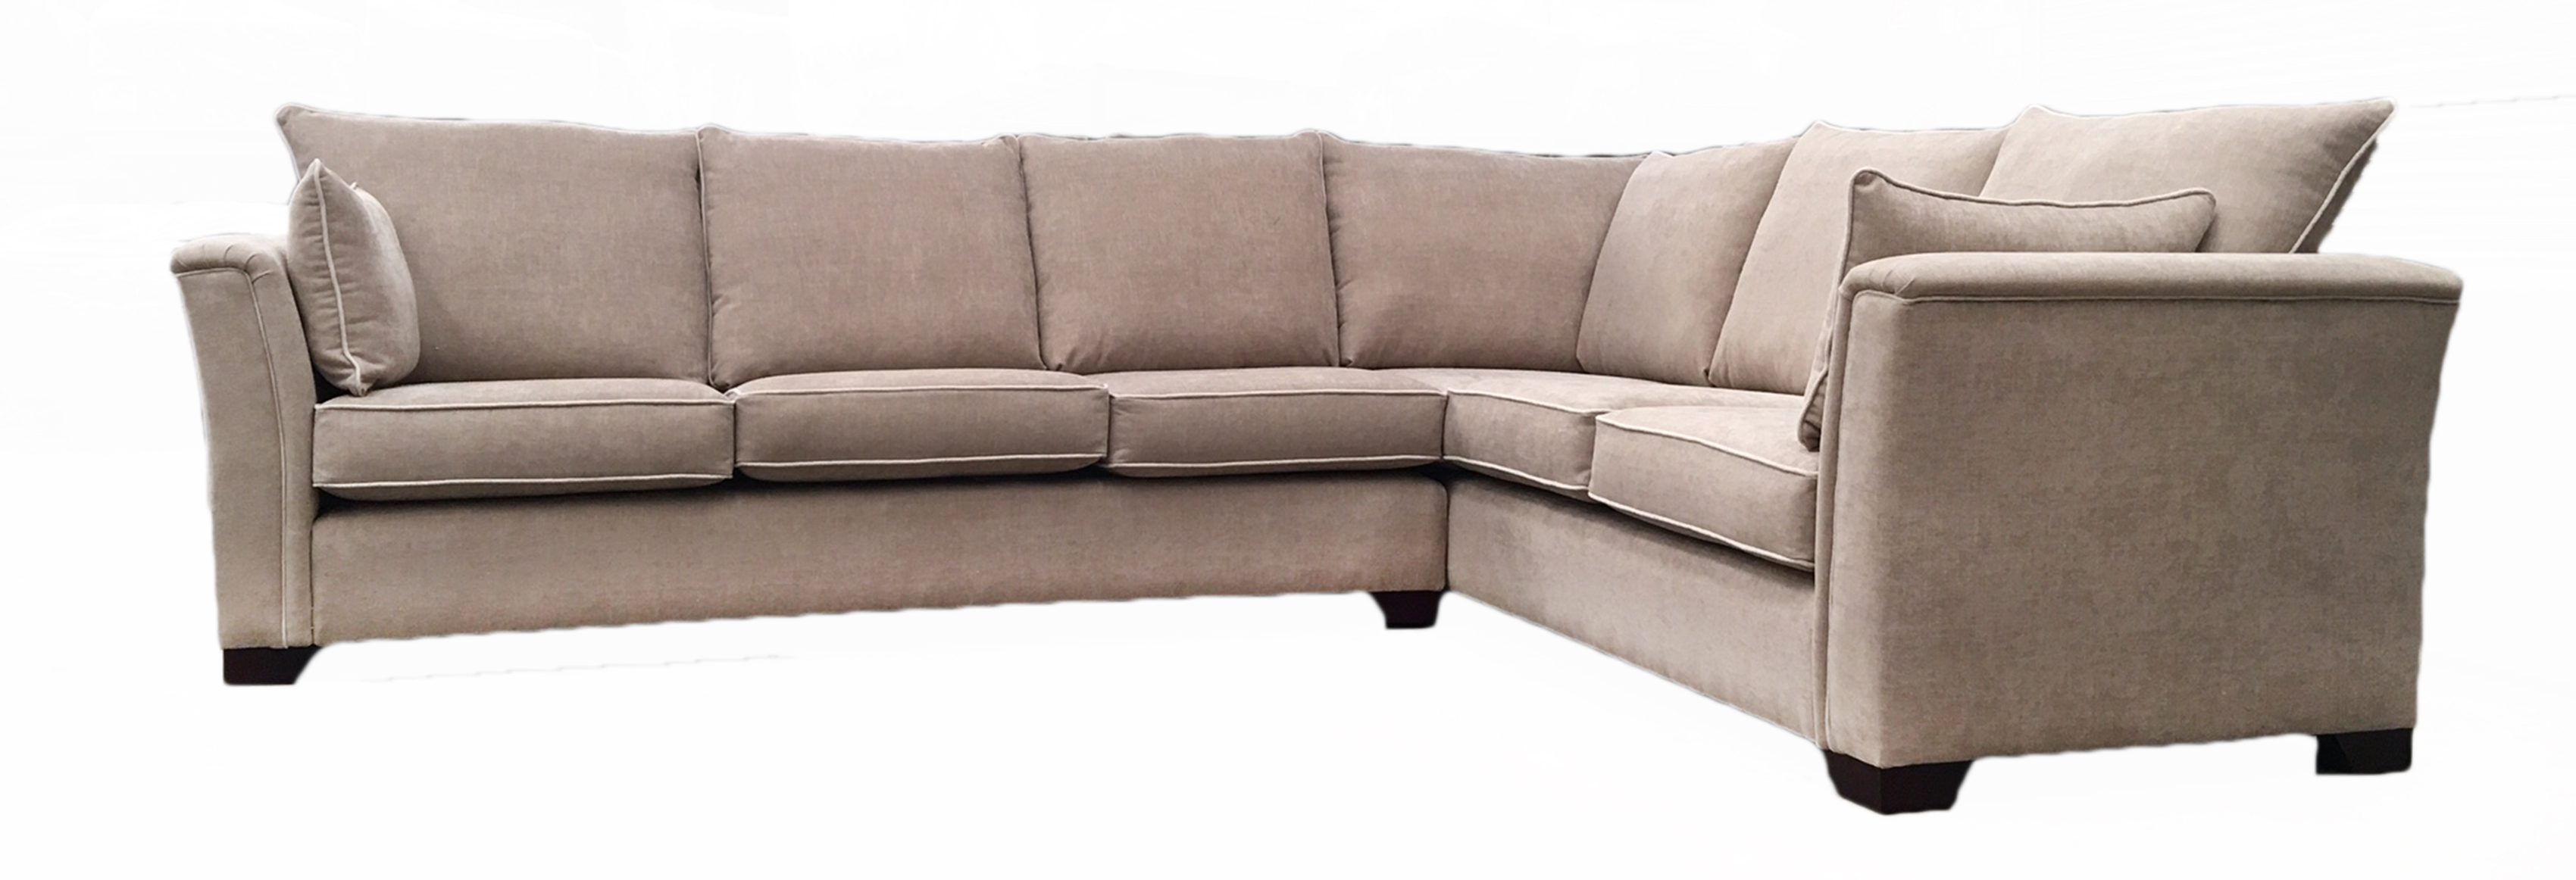 Madison Sofas And Chairs Range Finline Furniture